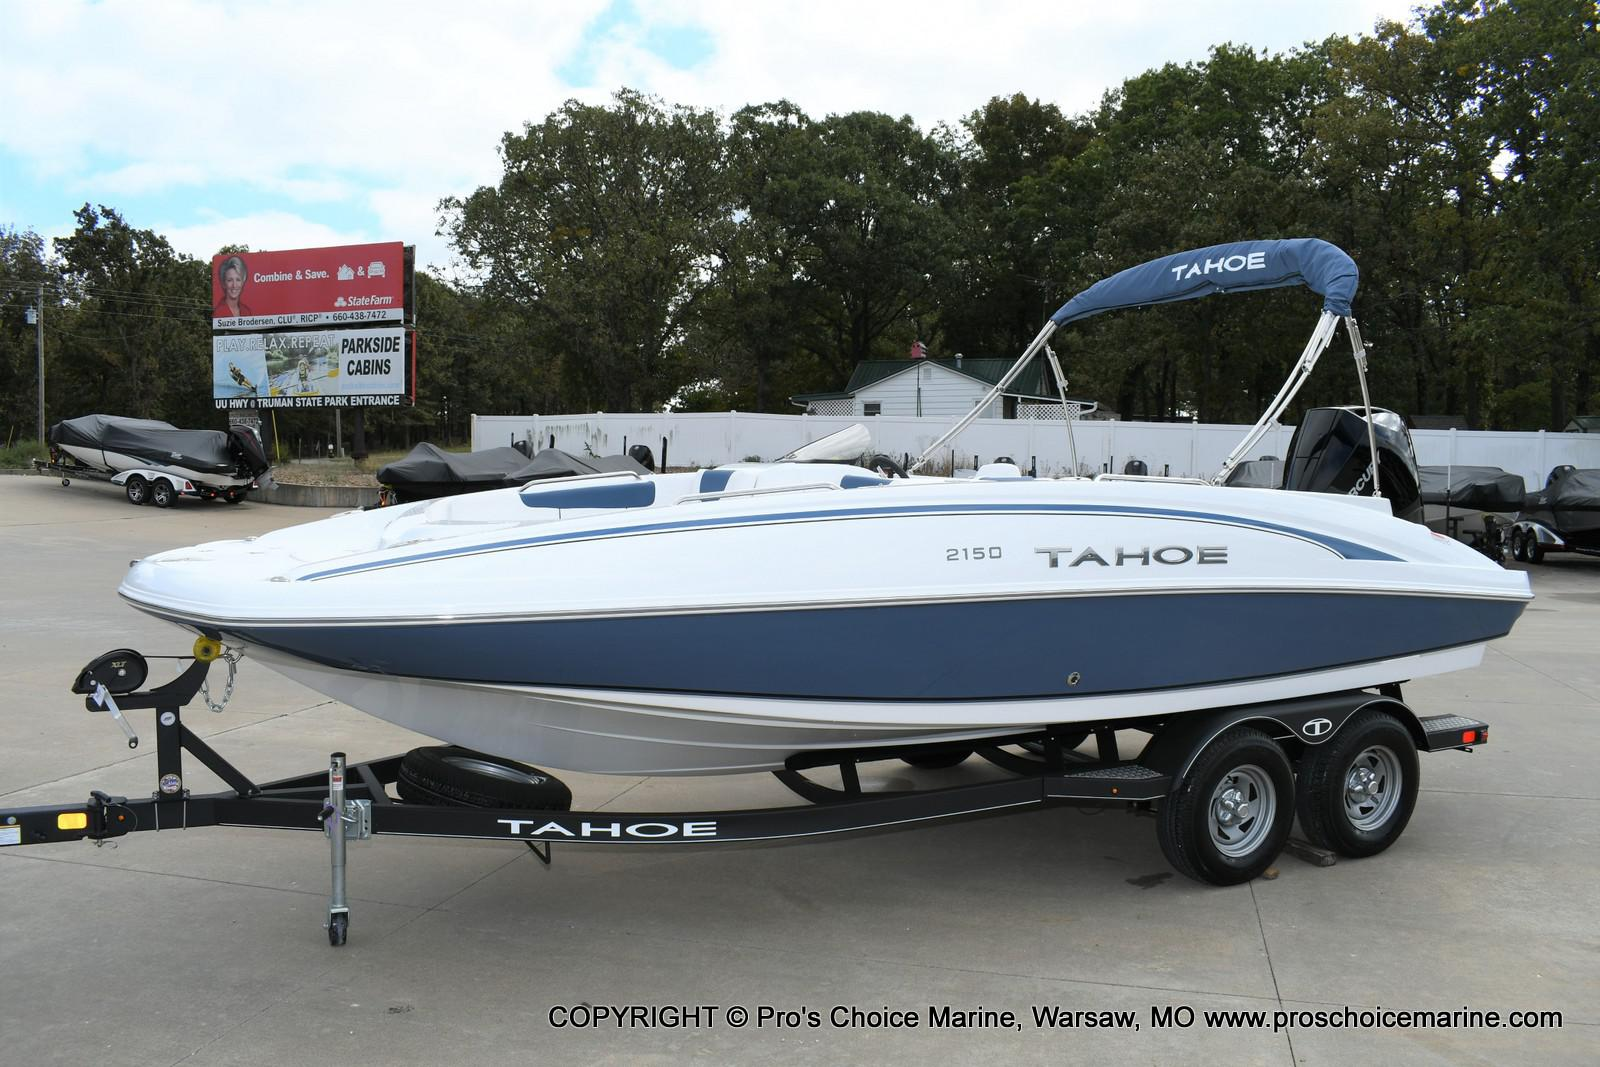 2020 Tahoe boat for sale, model of the boat is 2150 & Image # 18 of 50